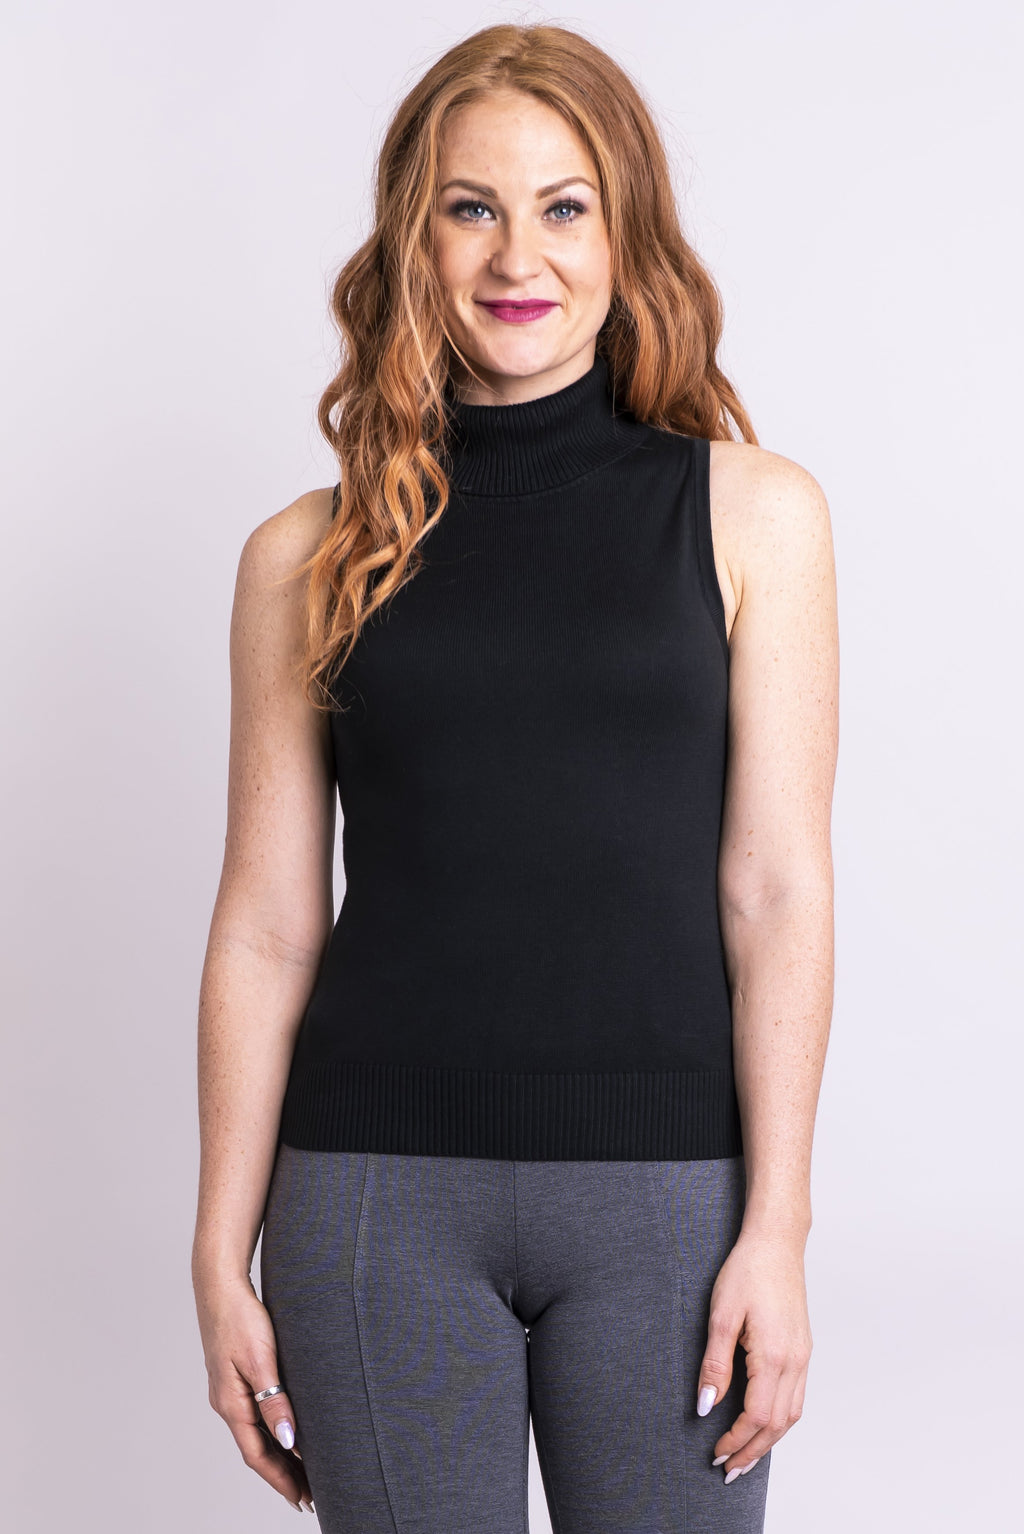 Malory Sweater, Black, Bamboo Cotton - Blue Sky Clothing Co